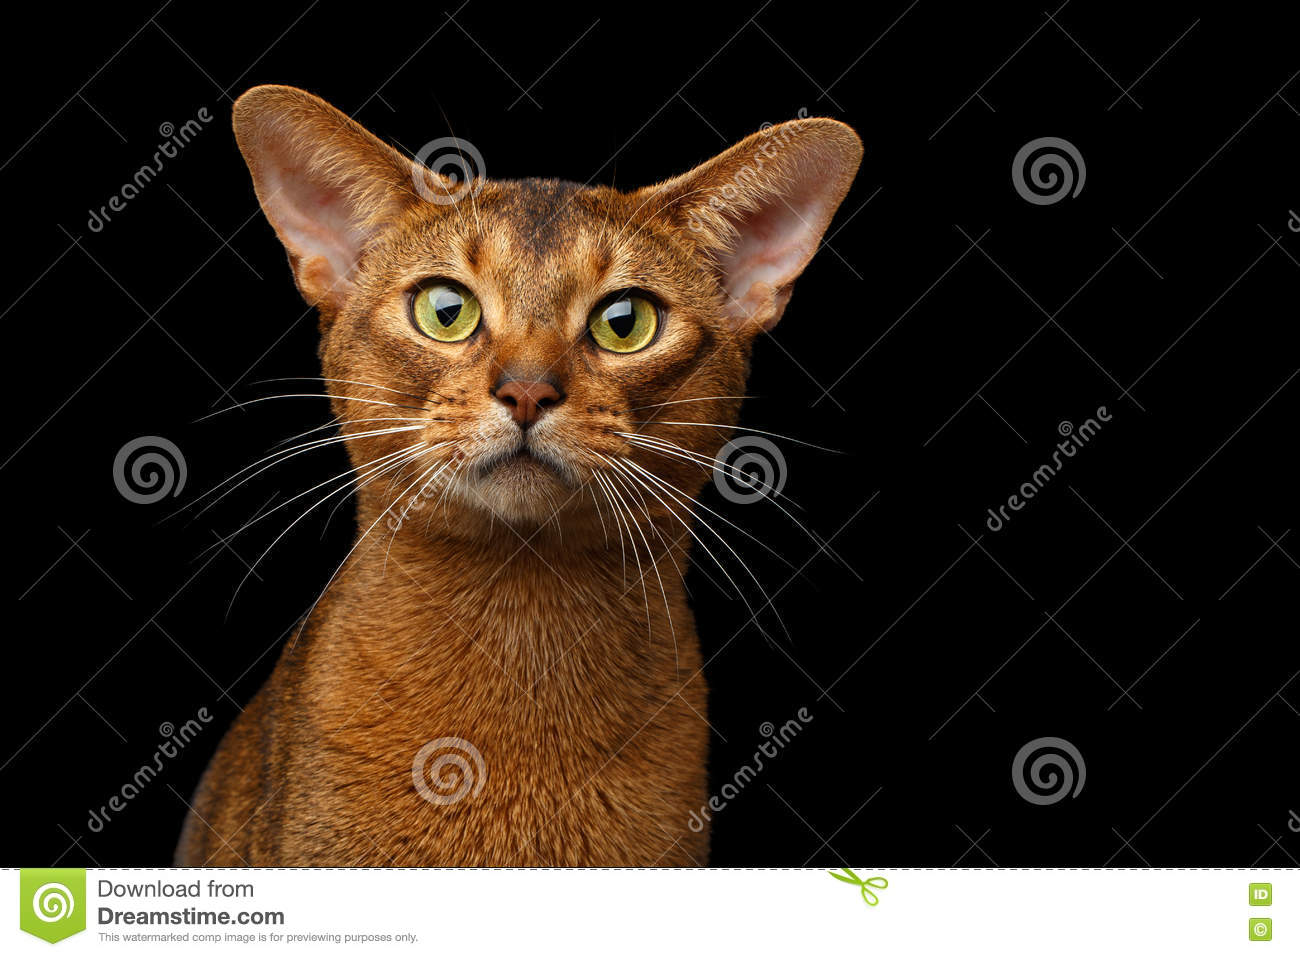 Closeup Purebred abyssinian cat portrait isolated on black background